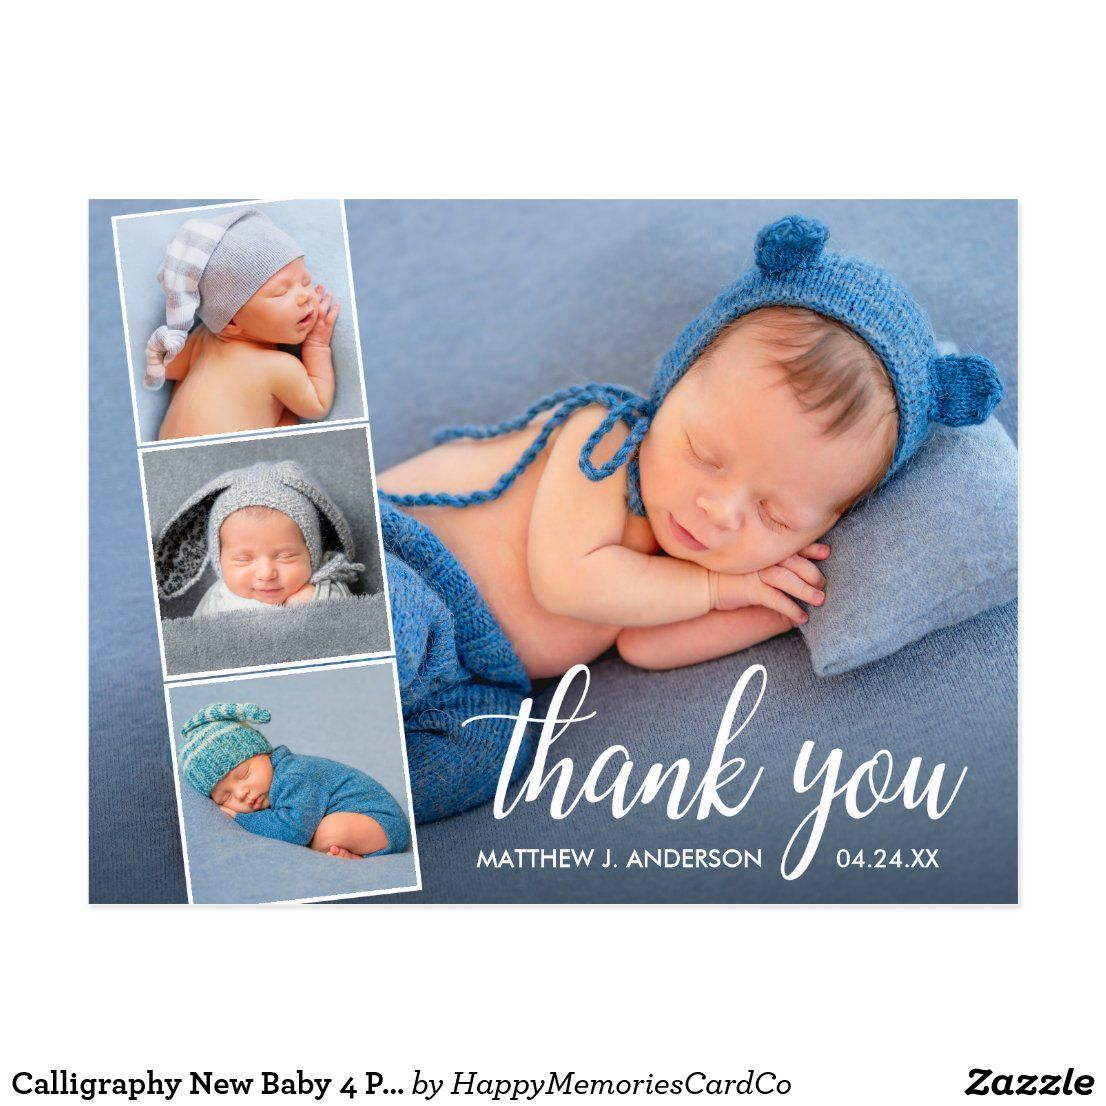 calligraphy new baby 4 photo collage thank you postcard